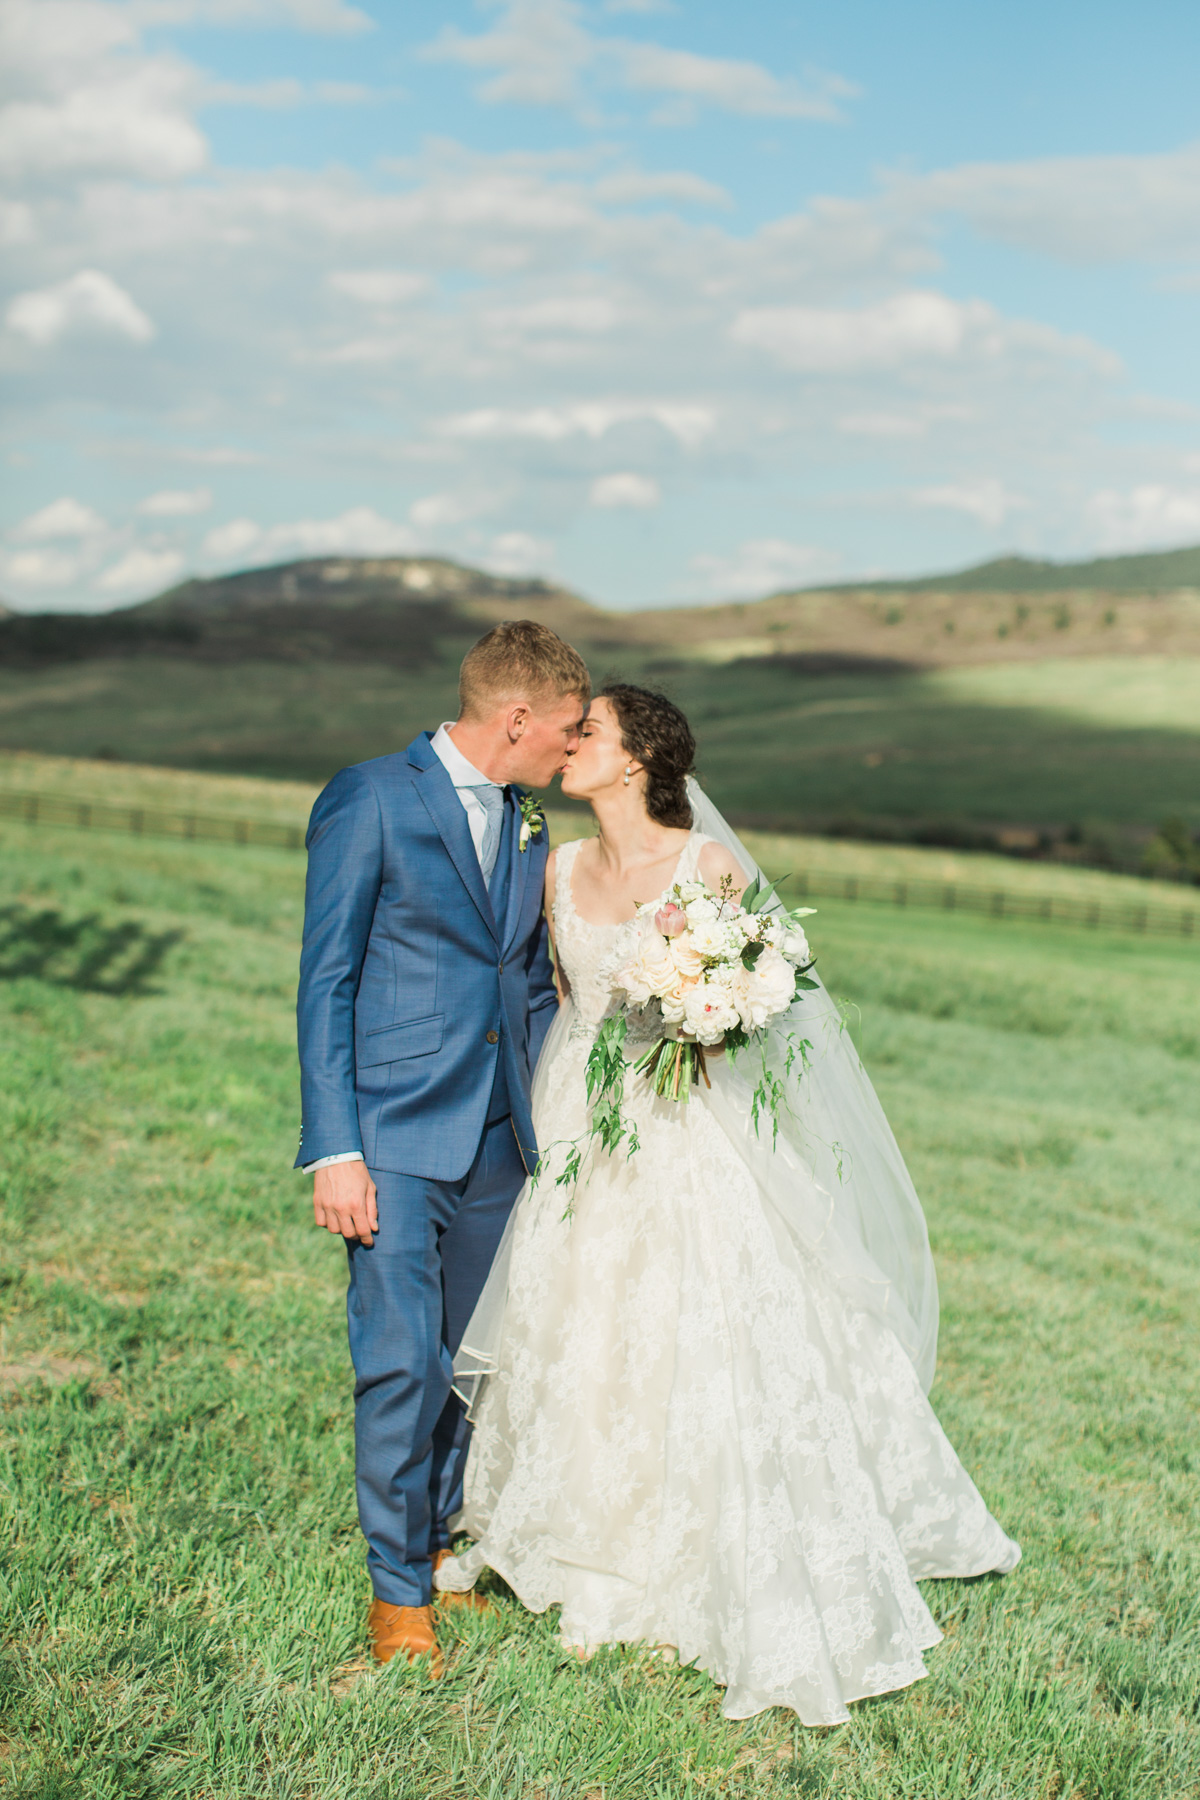 Spruce Mauntain Ranch Wedding Photographer0003-6.jpg